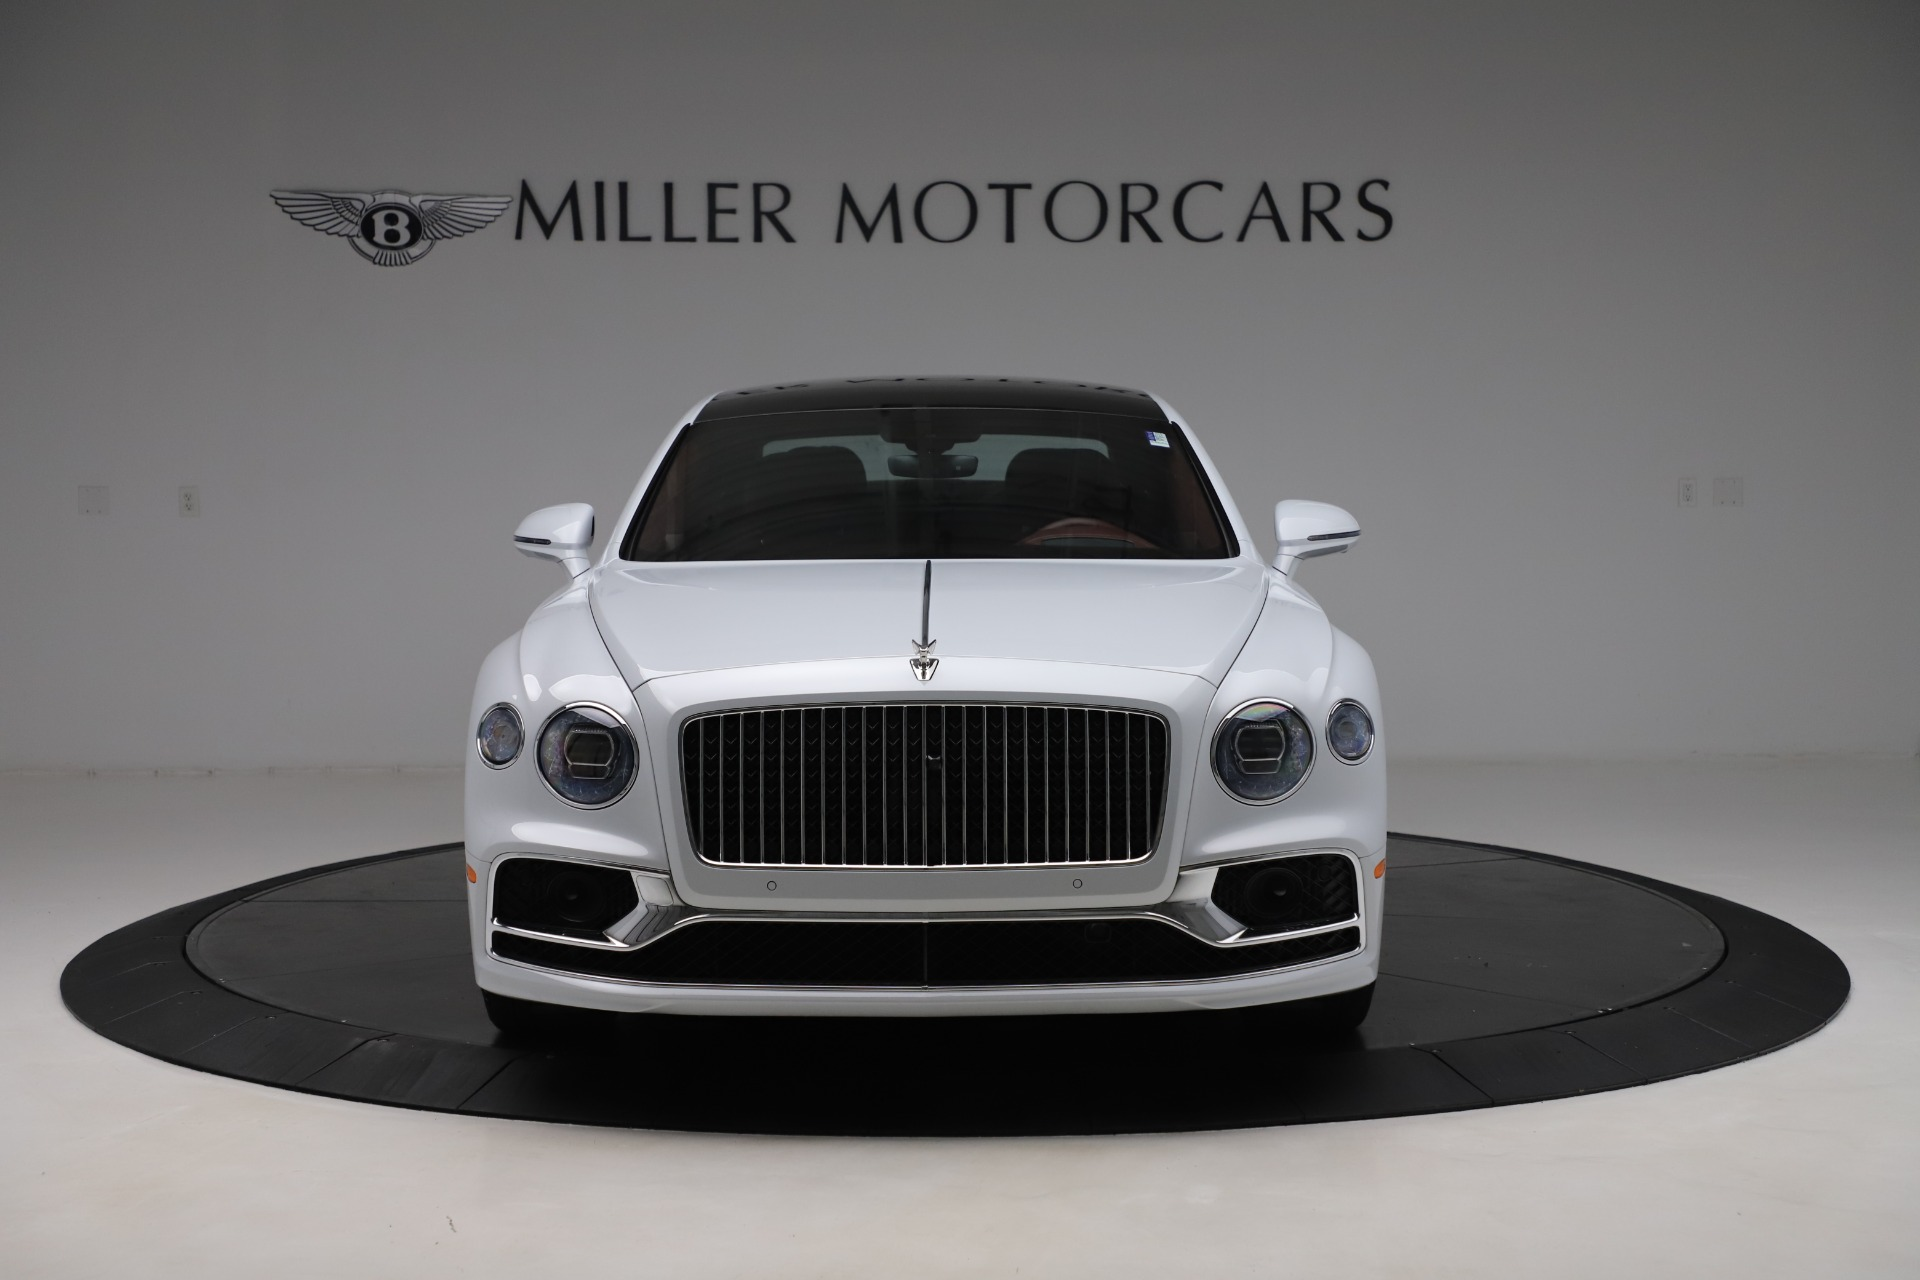 New 2021 Bentley Flying Spur  For Sale In Westport, CT 3230_p12